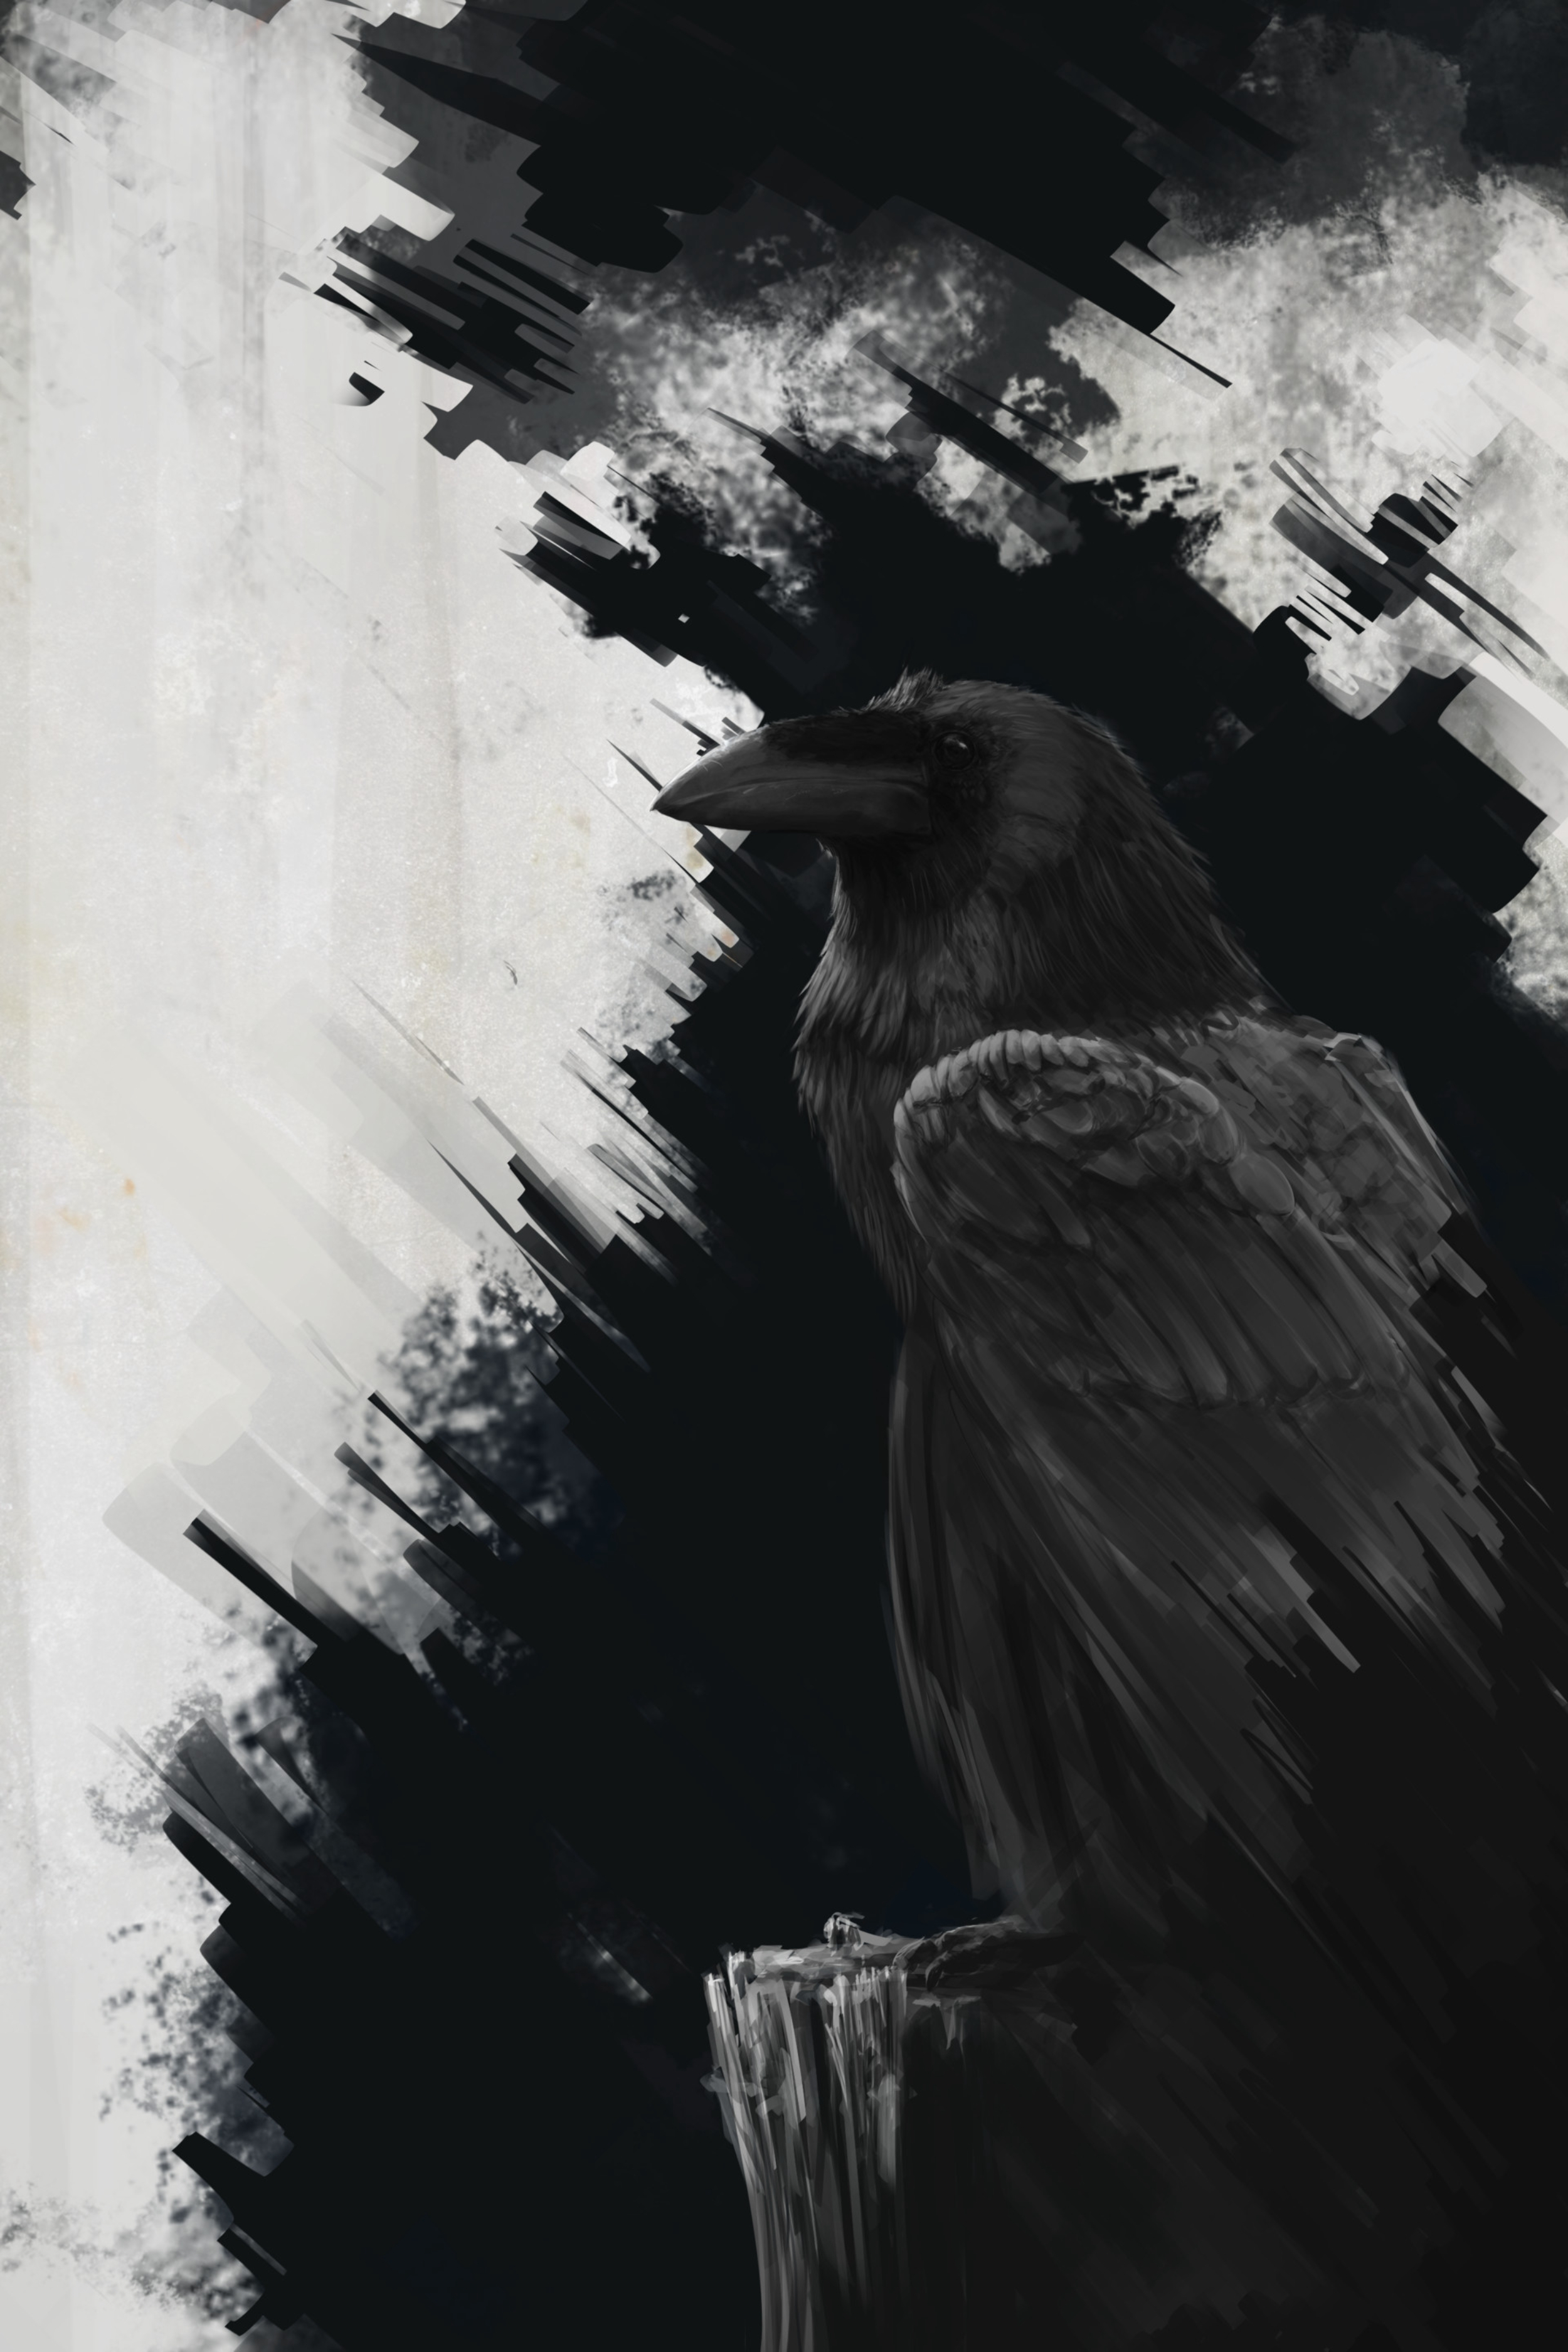 72385 download wallpaper Lines, Art, Bird, Raven screensavers and pictures for free